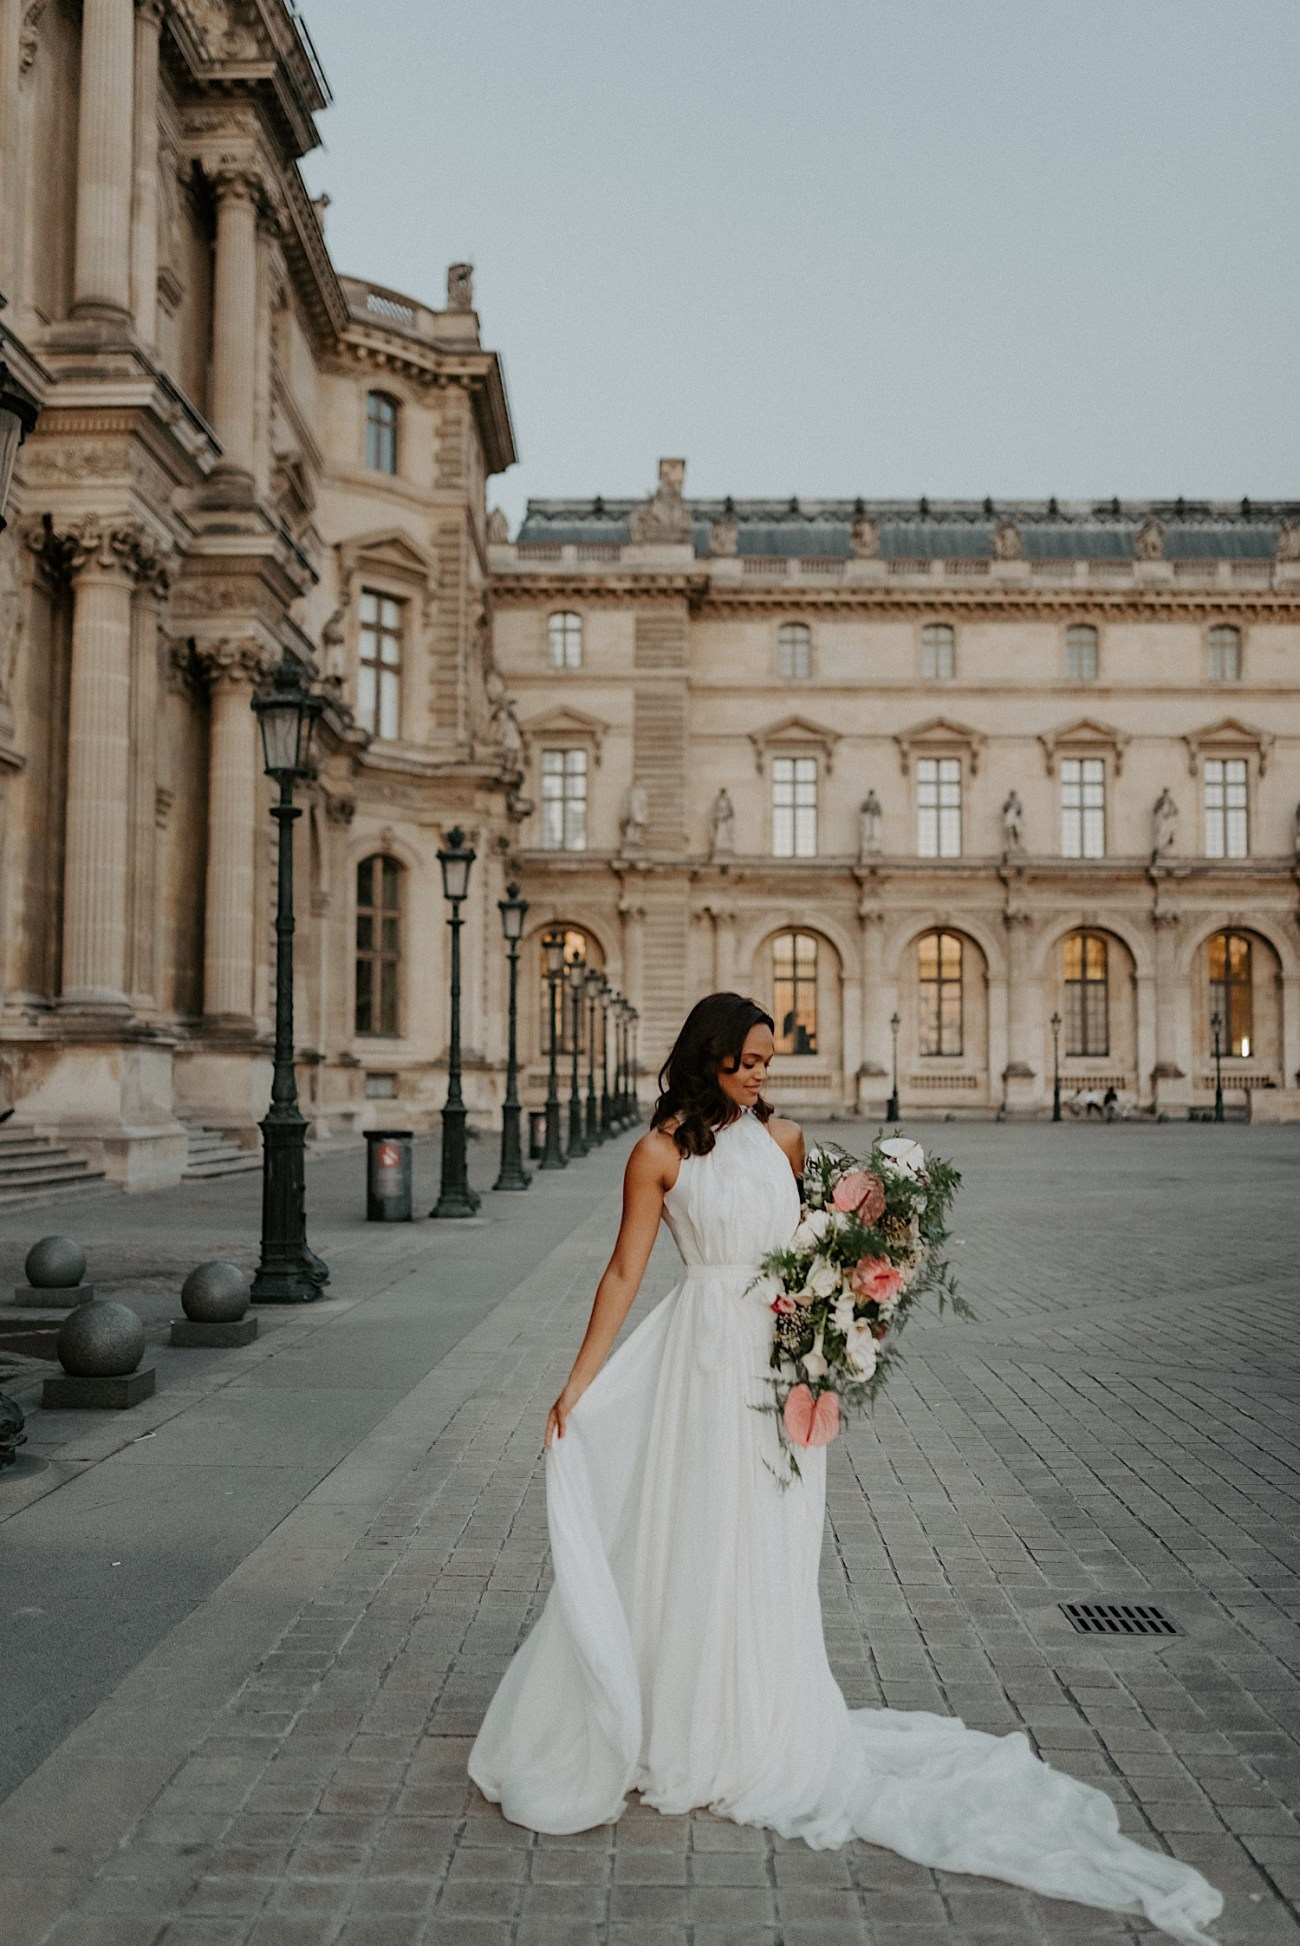 Paris Louvre Wedding Photos Paris Wedding Photographer Destination Wedding France Anais Possamai Photography 34